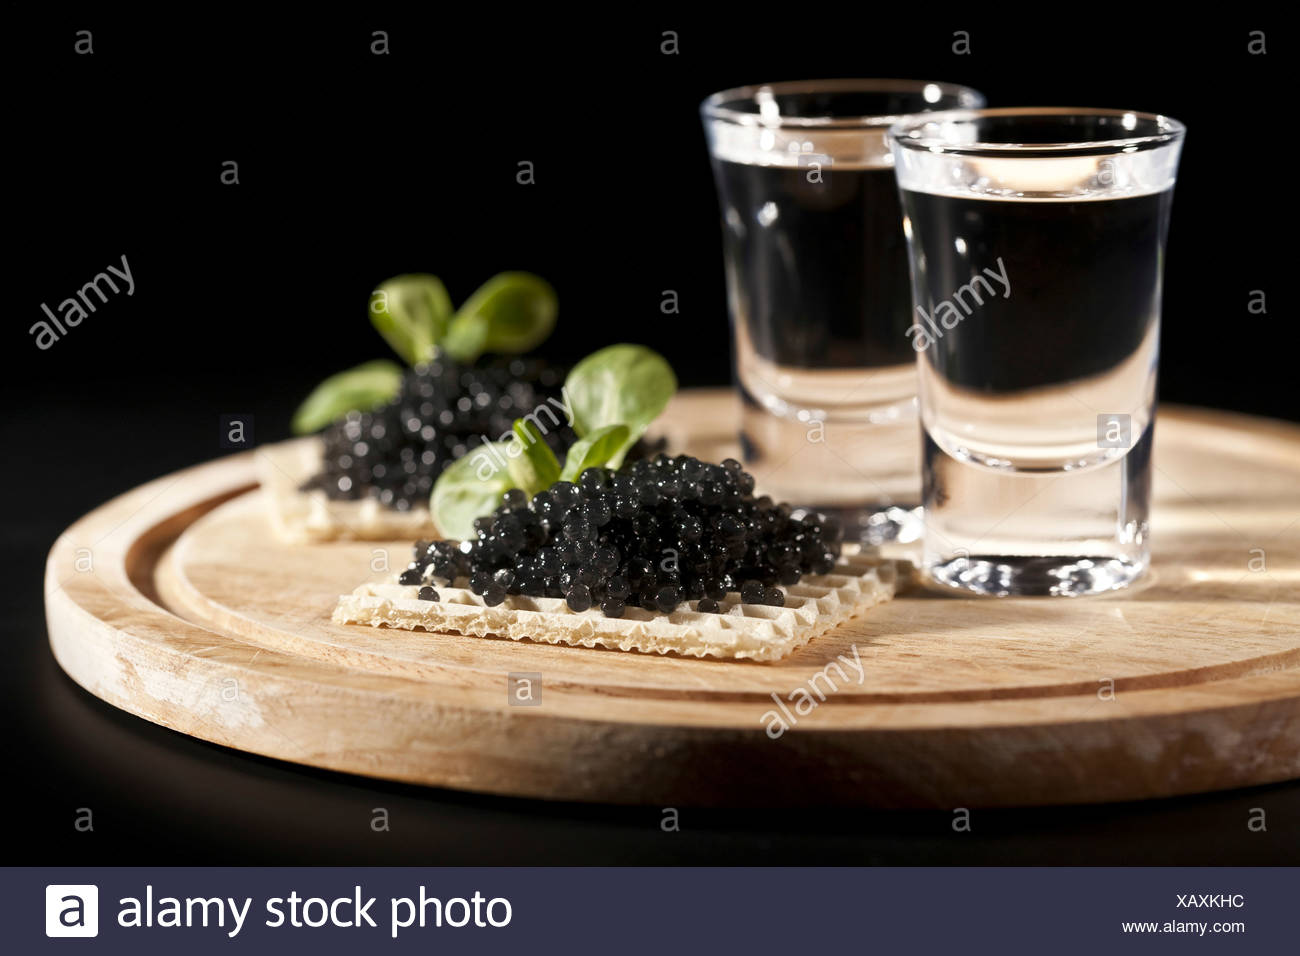 served place setting: vodka and sandwiches with black caviar on black background - Stock Image